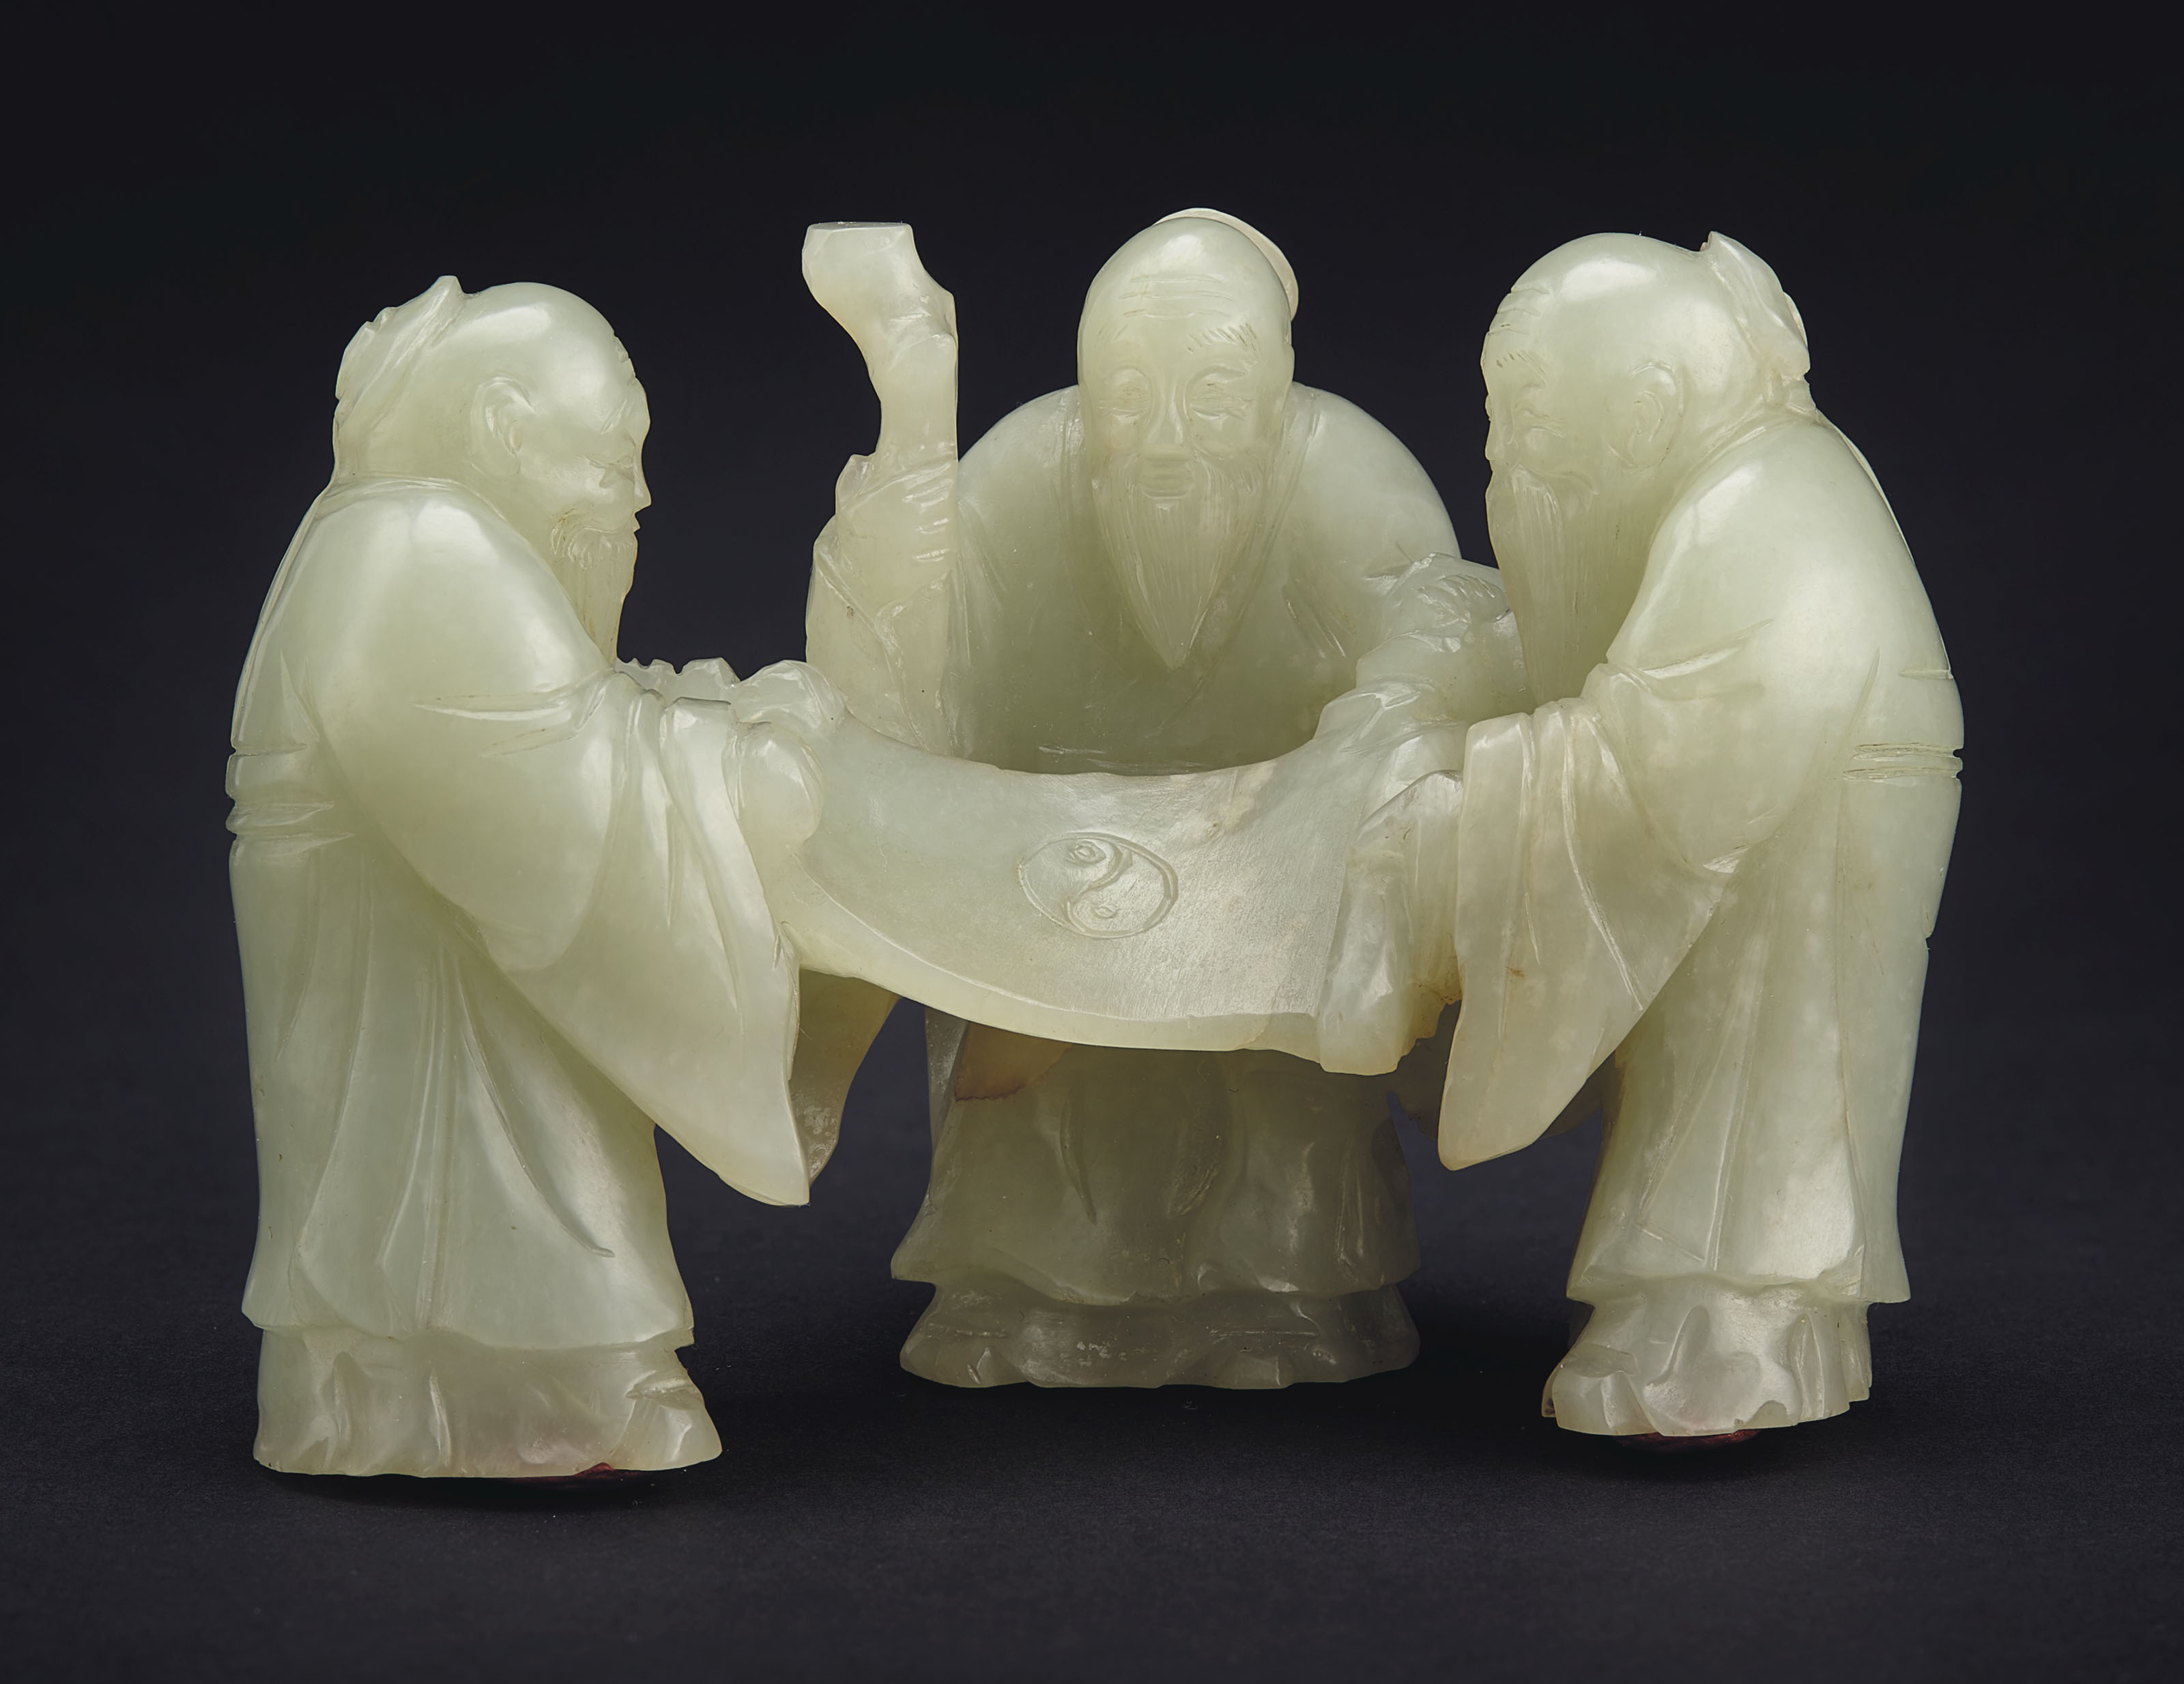 A PALE GREYISH-GREEN JADE CARVING OF THREE SCHOLARS